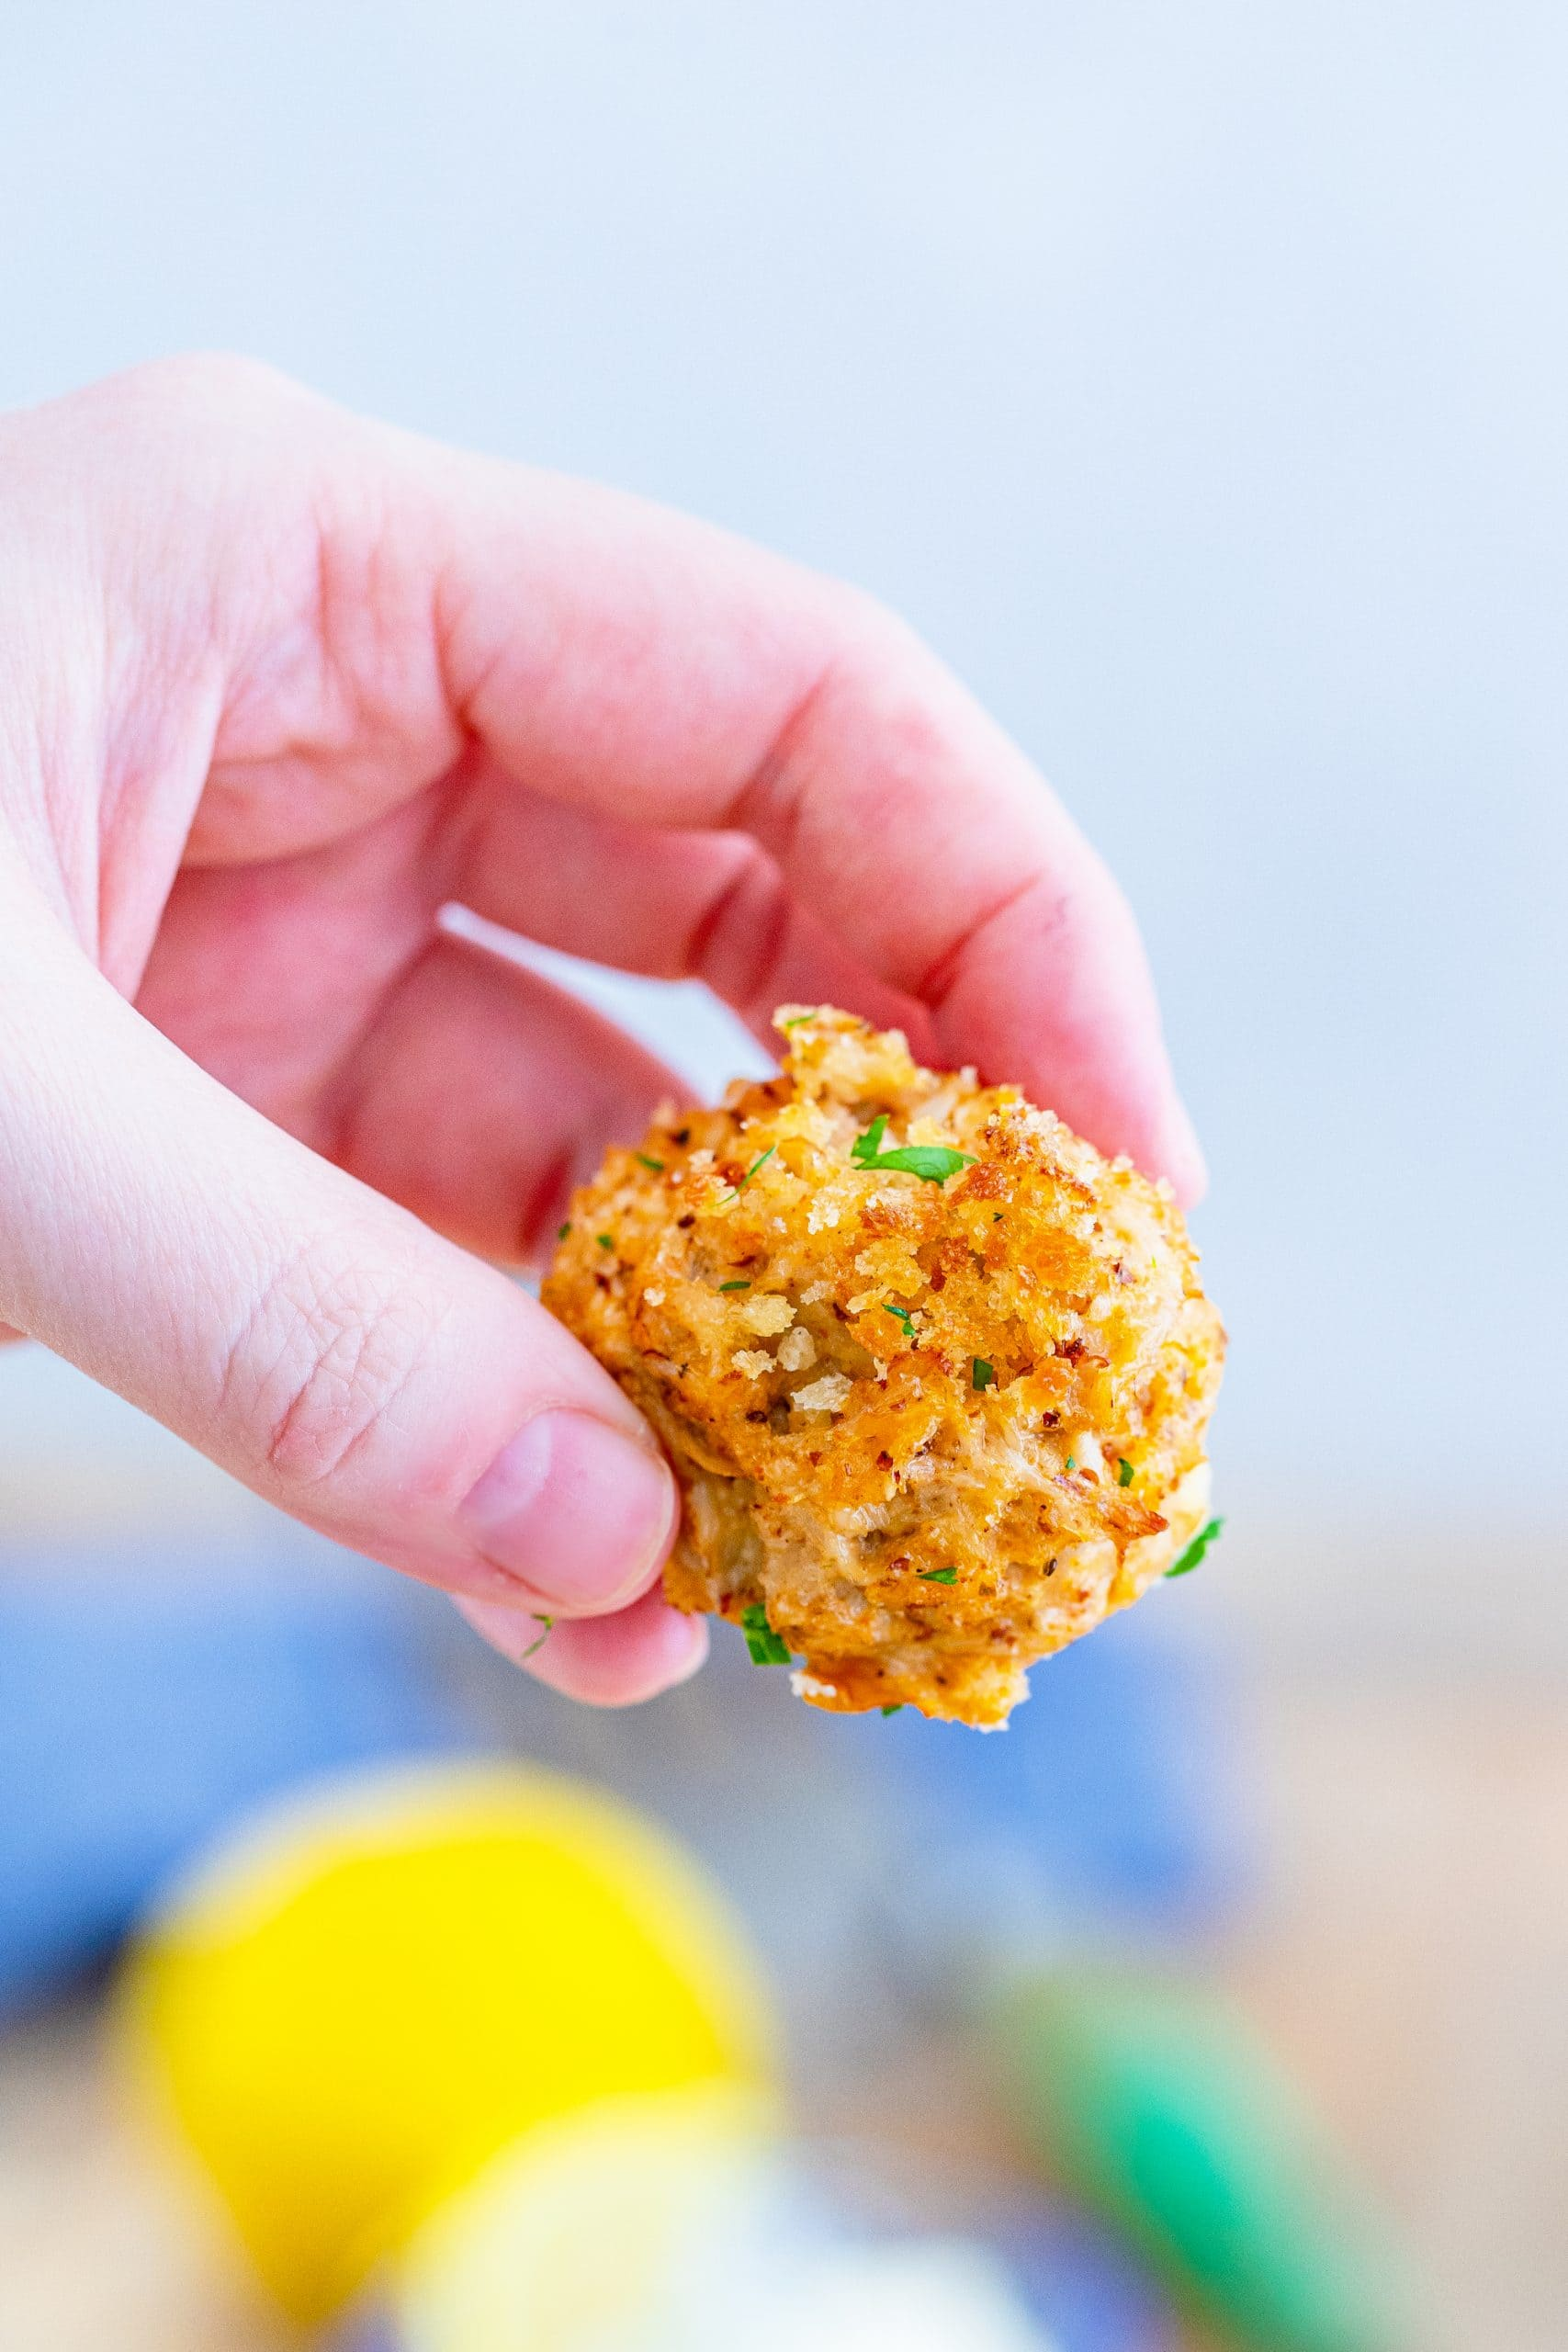 picture of a hand holding a crab cake